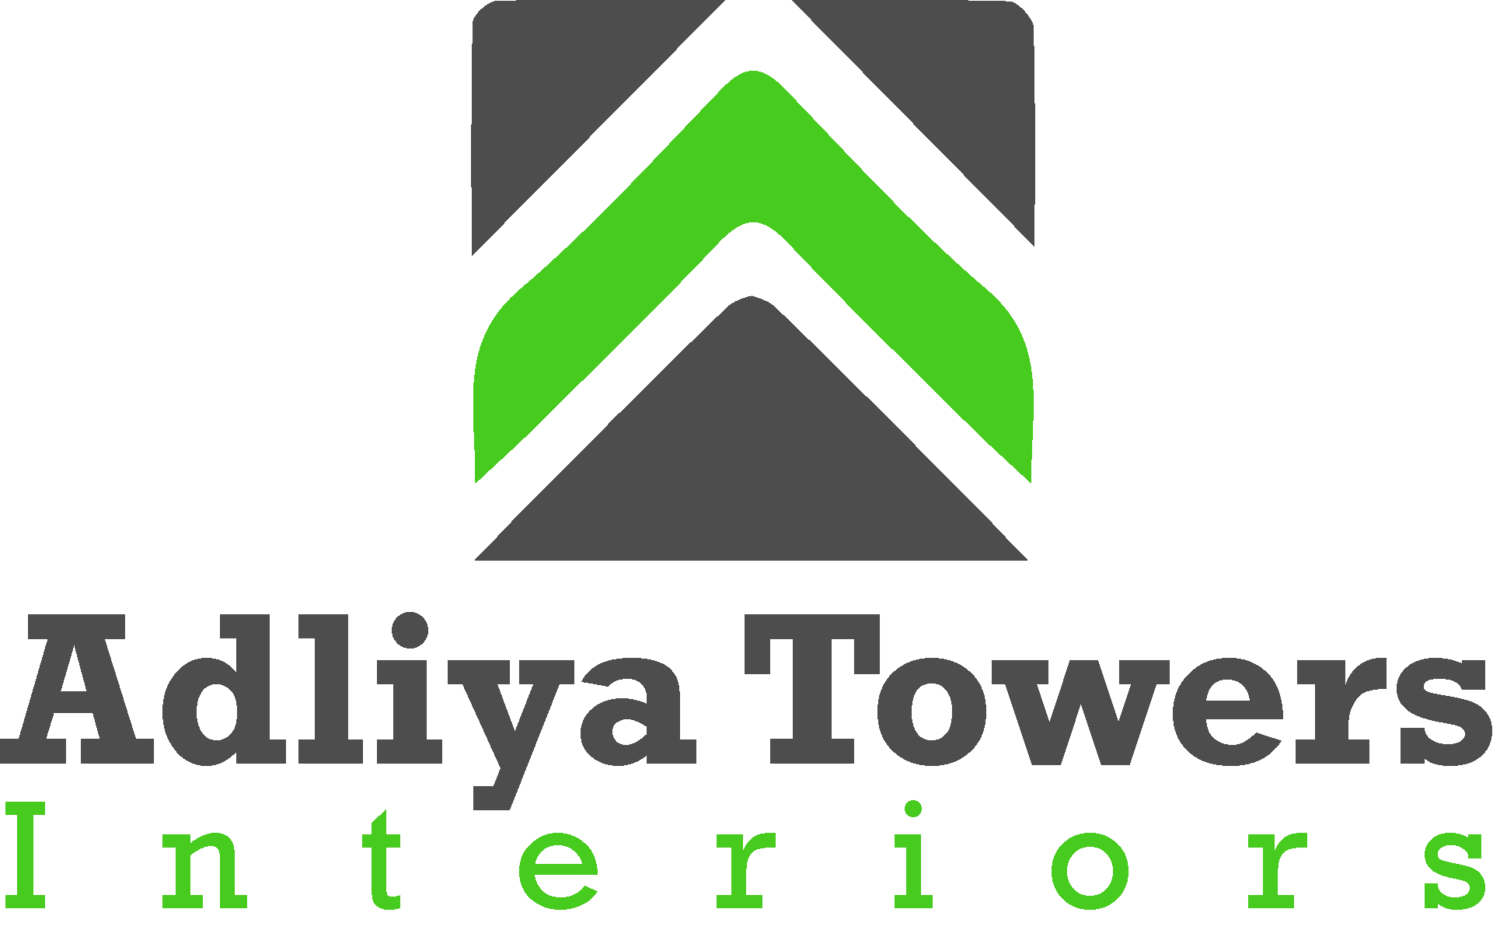 Adliya Towers Interiors